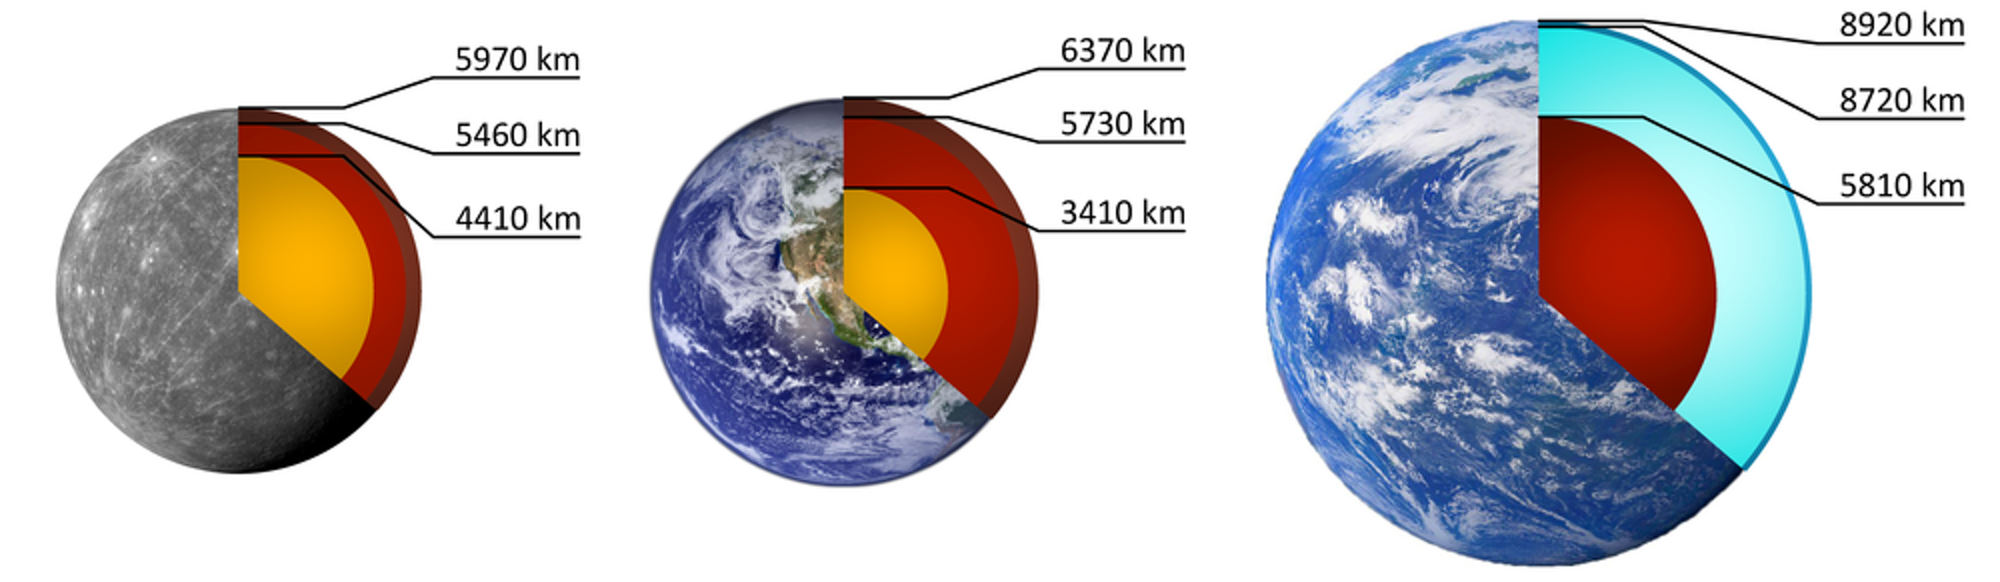 Left: A possible Proxima b composition similar to Mercury's; Middle: Earth (for comparison); Right: a Proxima b composition similar to Titan's.